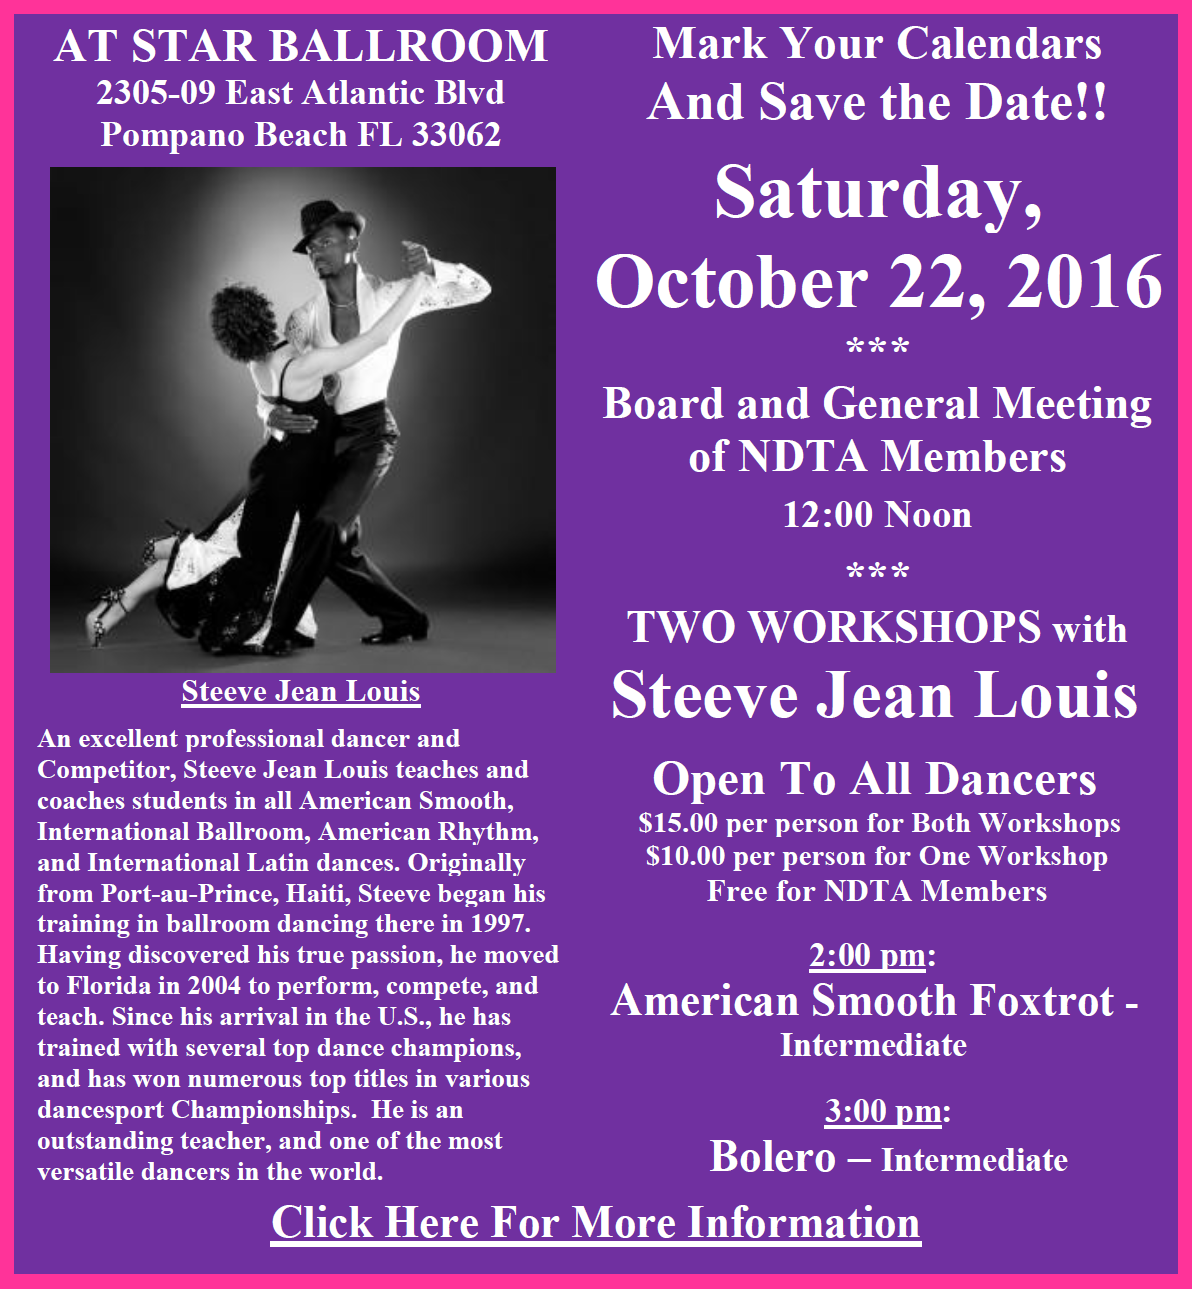 October 22, 2016 - NDTA Meeting & Two Workshops by Steeve Jean Louis